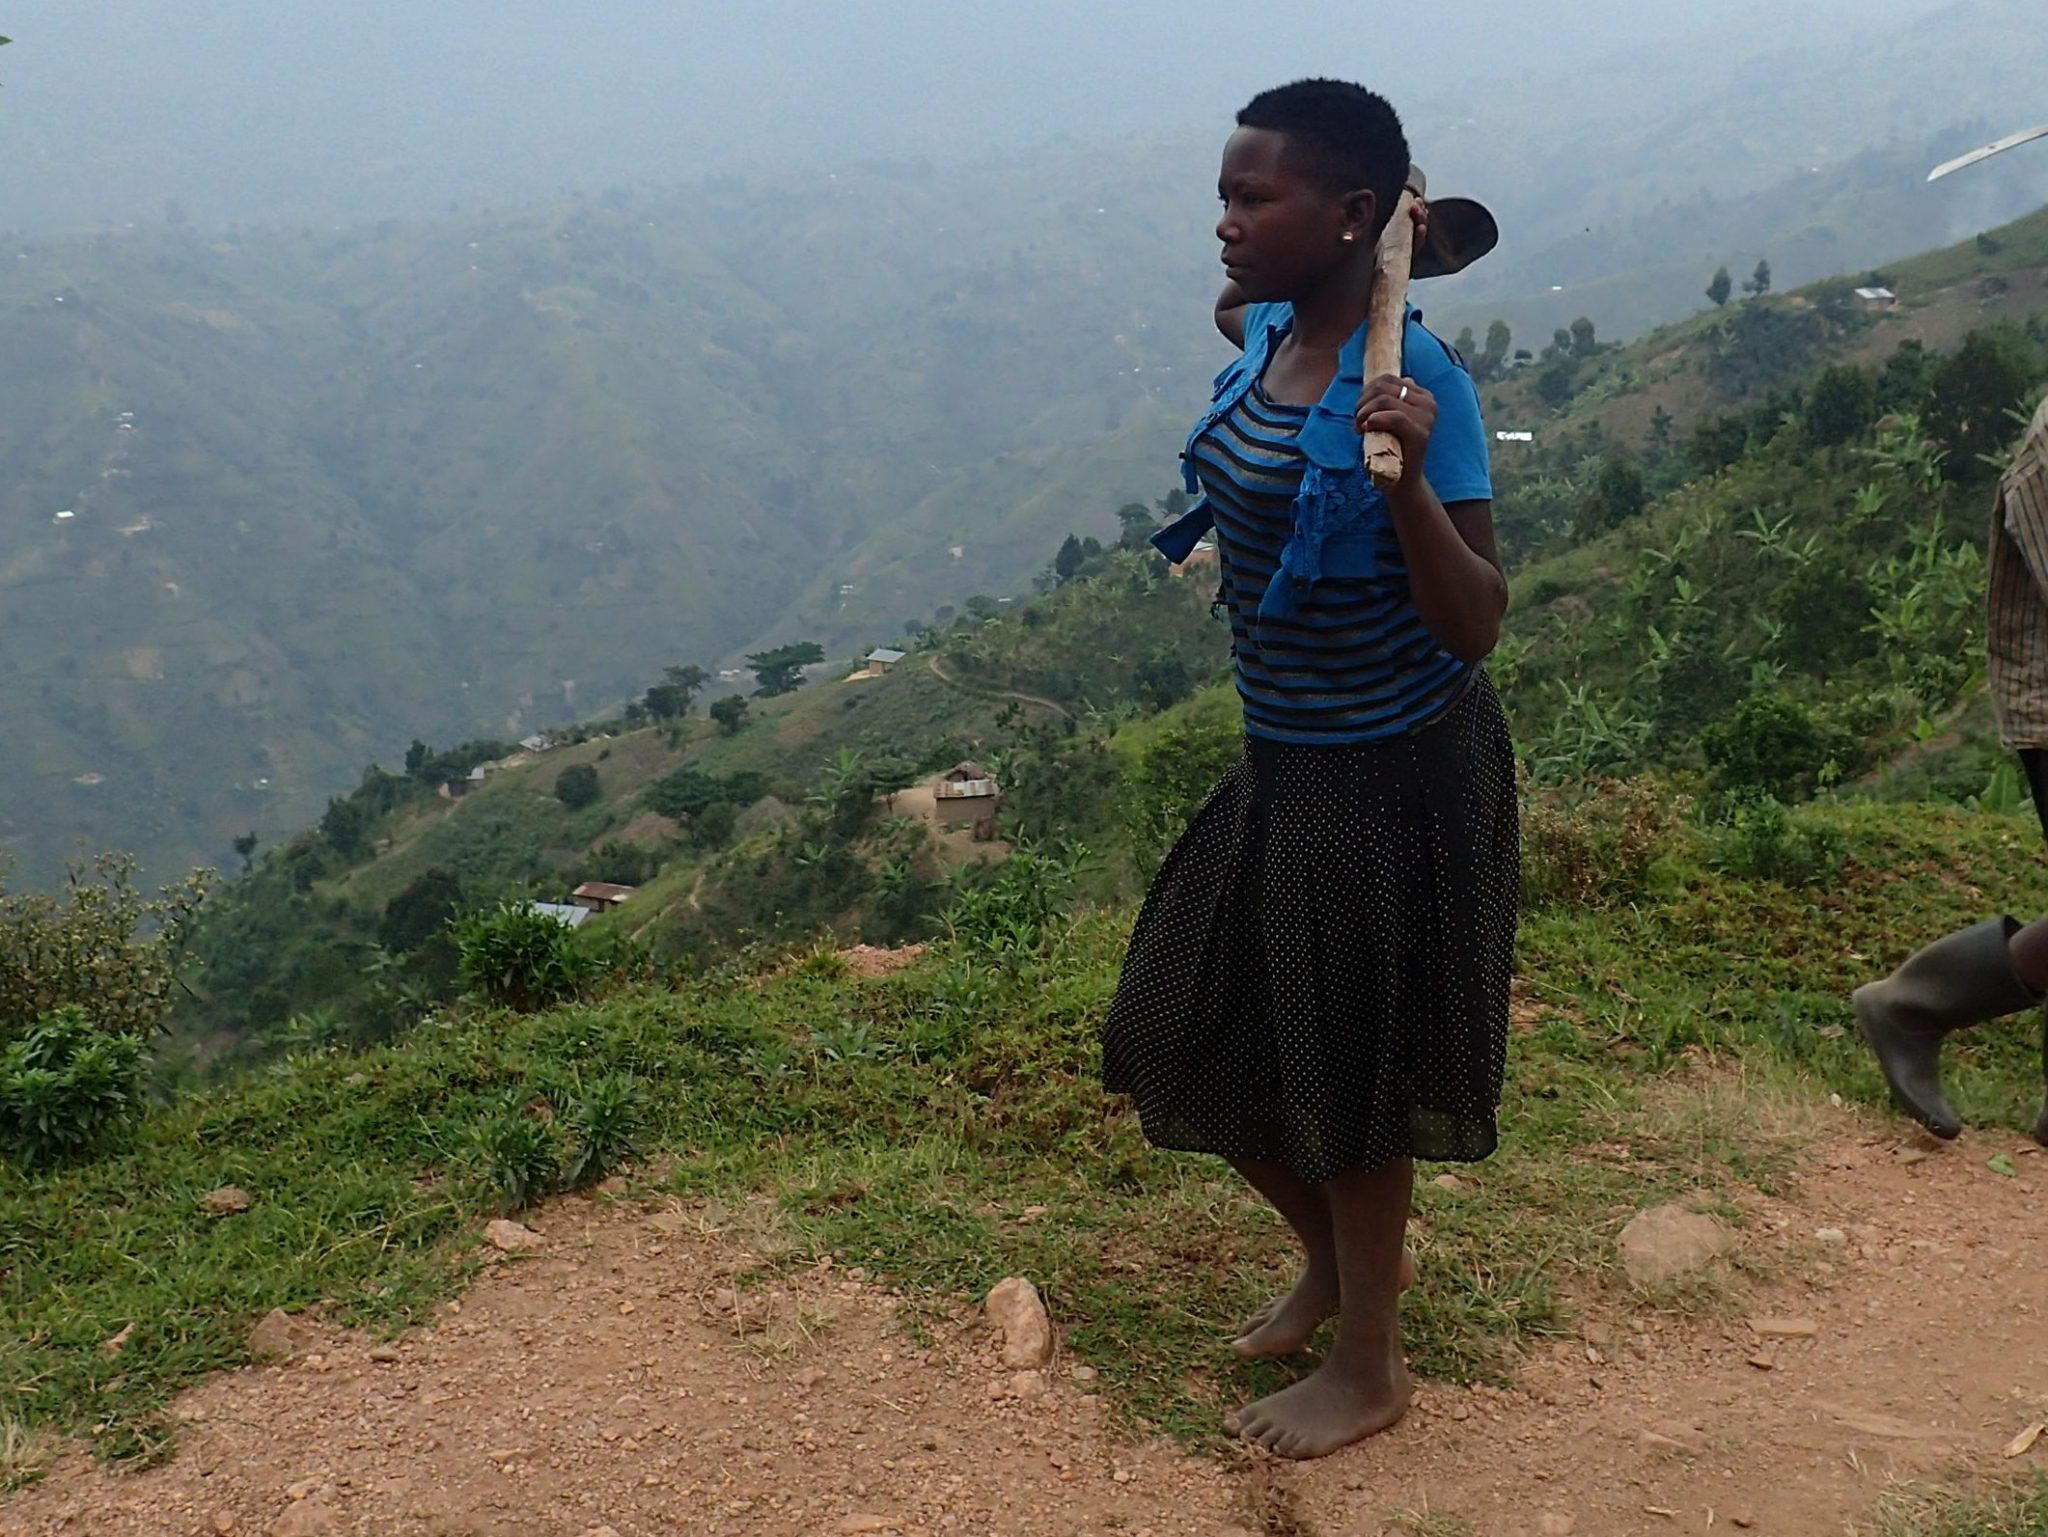 A Kyarumba woman walks home after a day of tending to her crops.